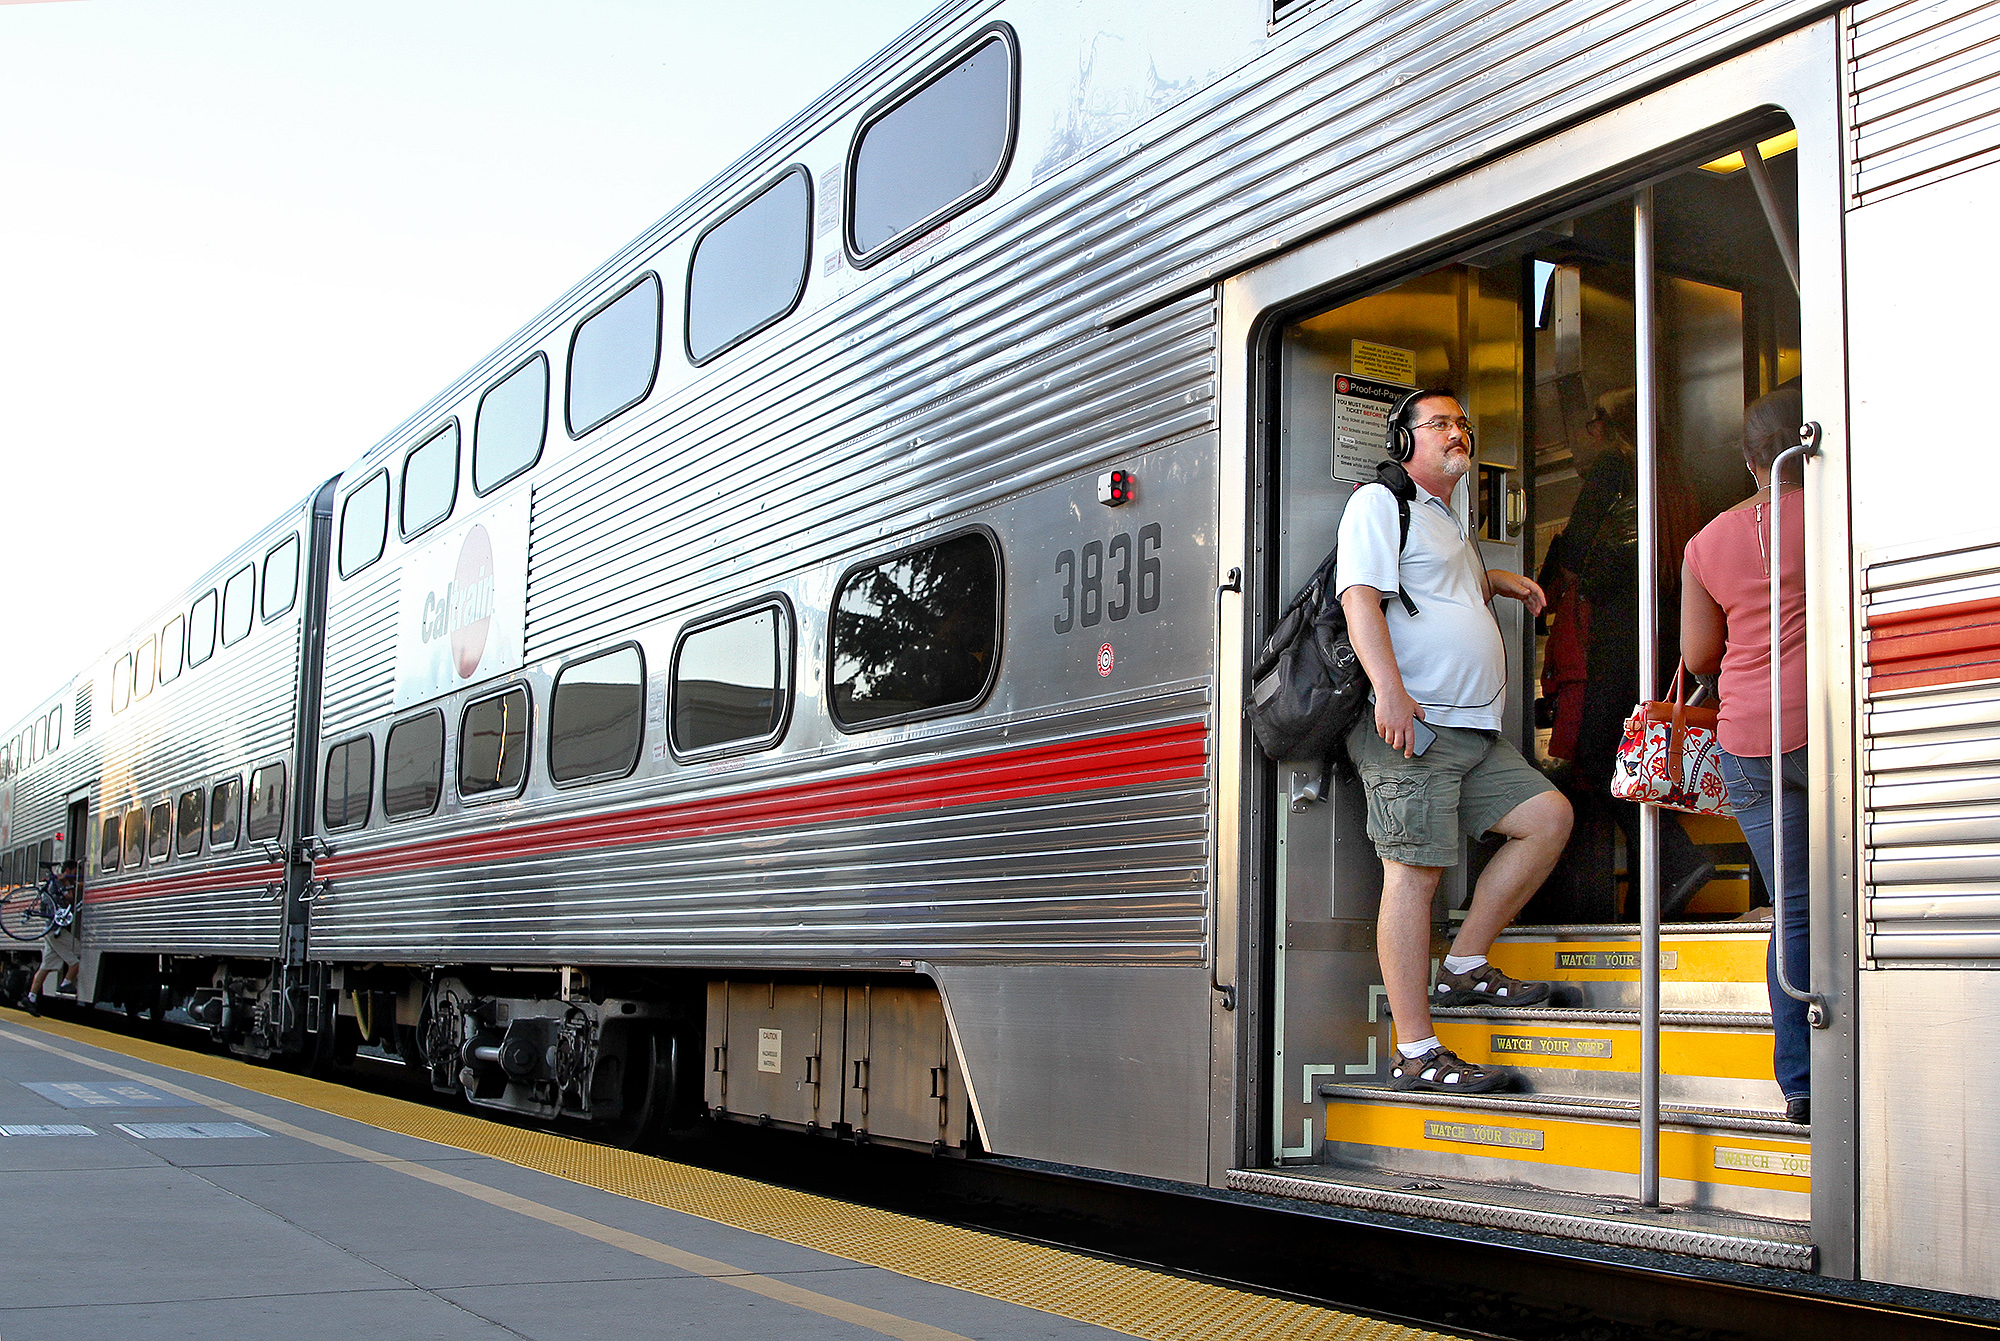 Ridership on Caltrain has increased significantly over the past 10 years.